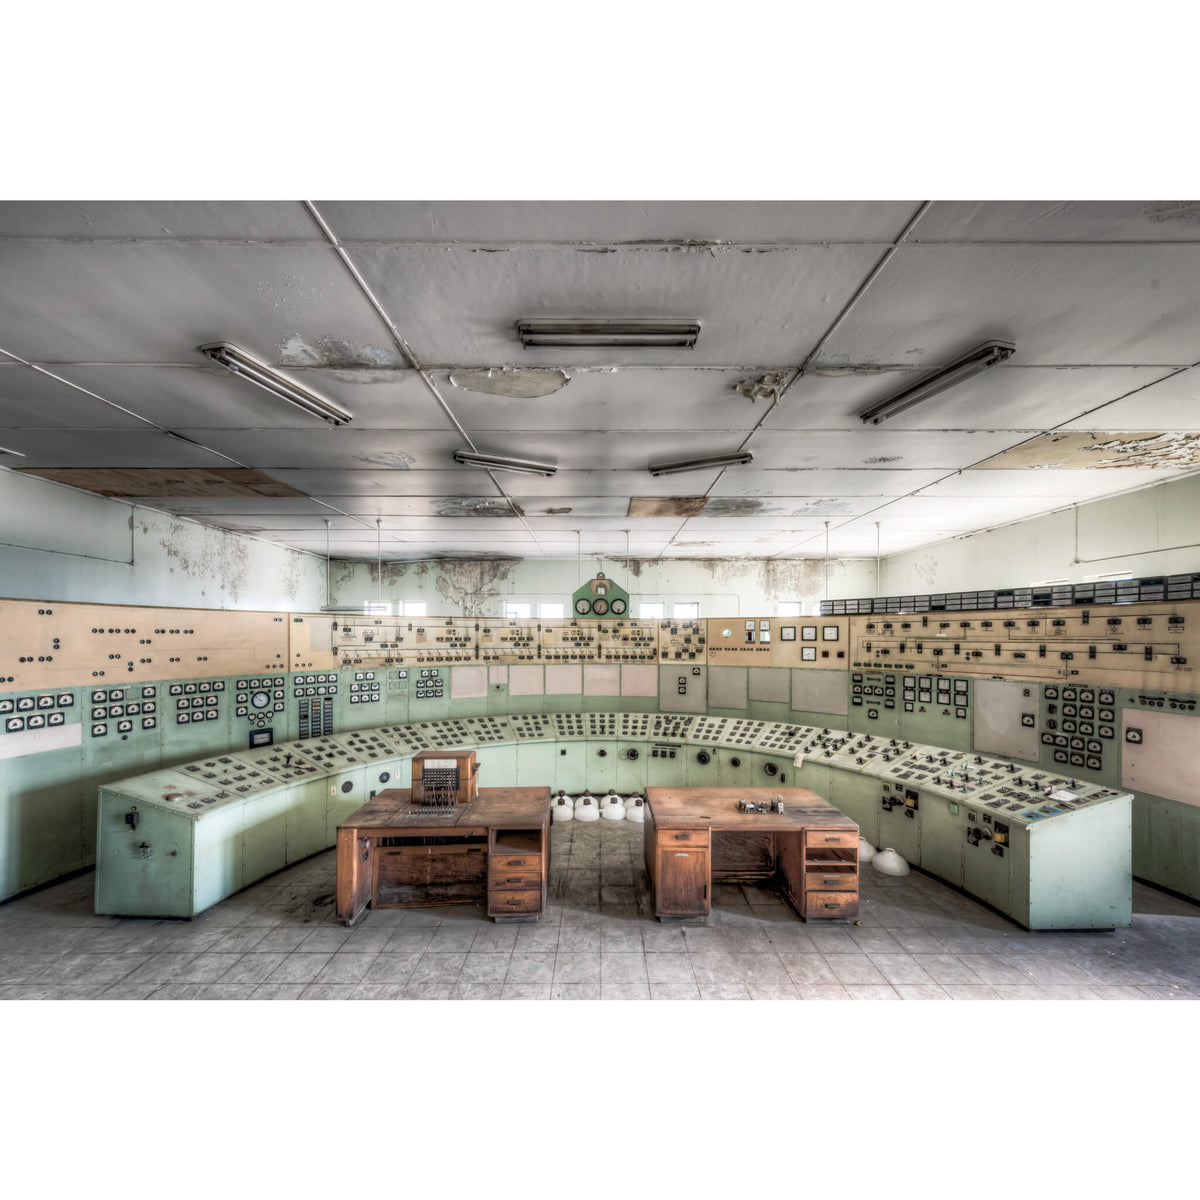 Control Room | White Bay Power Station Fine Art Print - Lost Collective Shop